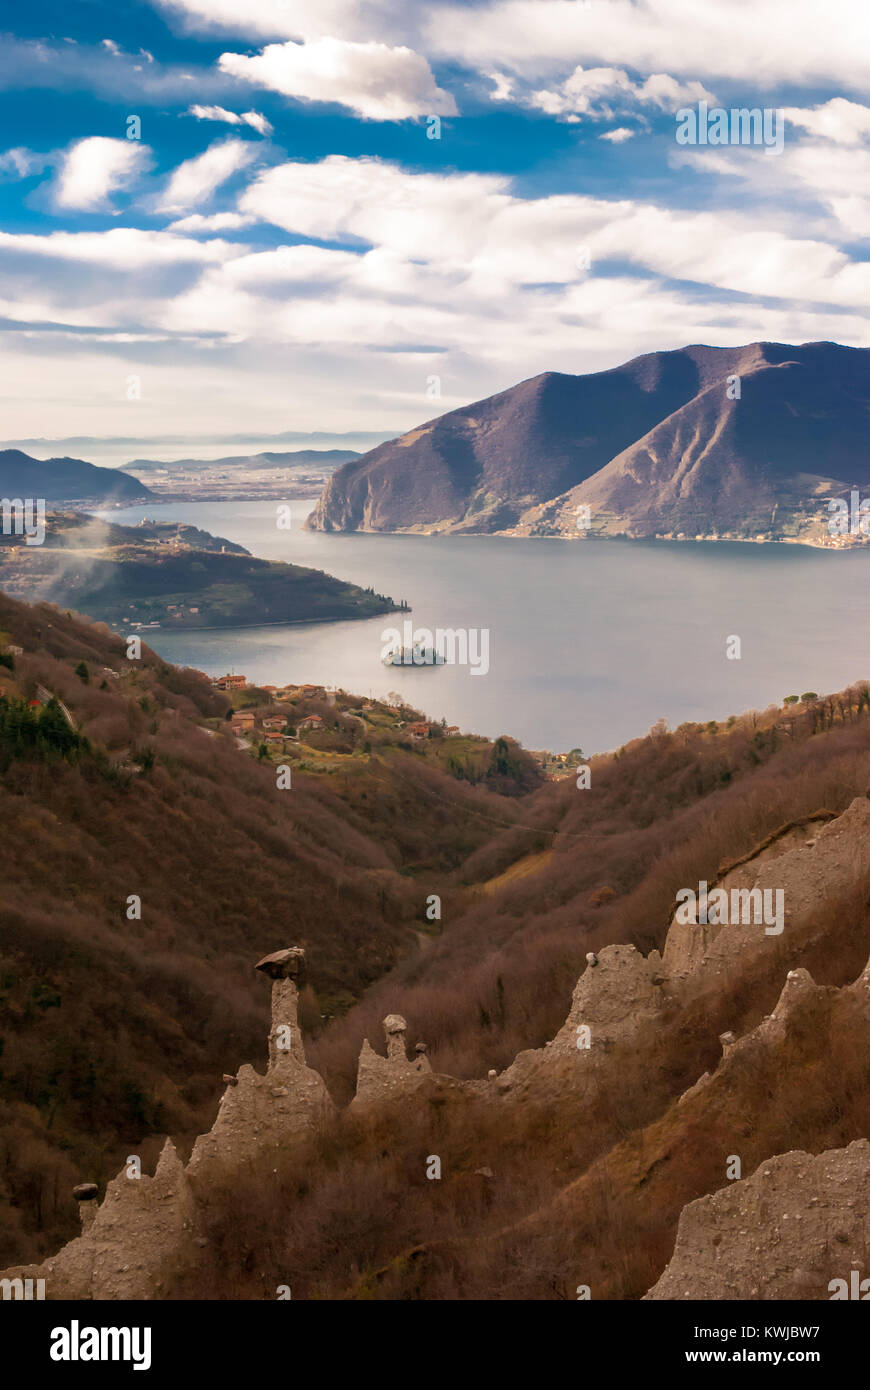 Fantastic view of Iseo Lake and the pyramids of Zone. These pyramids are particular geological formations caused - Stock Image